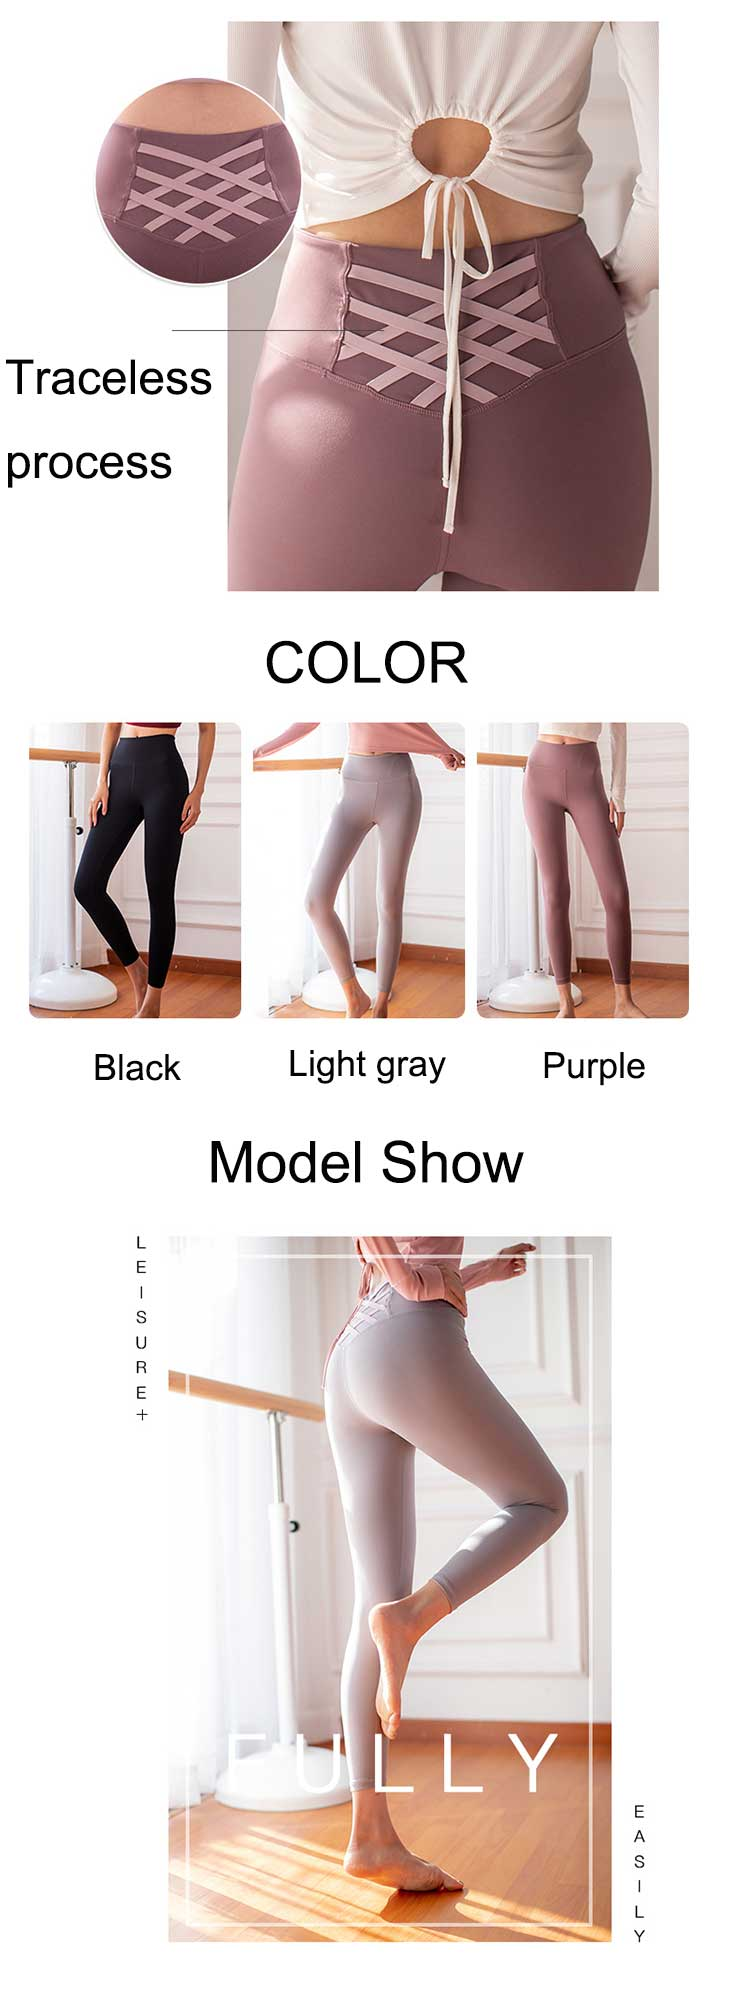 Sewing-Line-is-very-close-to-the-leg-shape,--wearing-it-without-pressure-during-sports